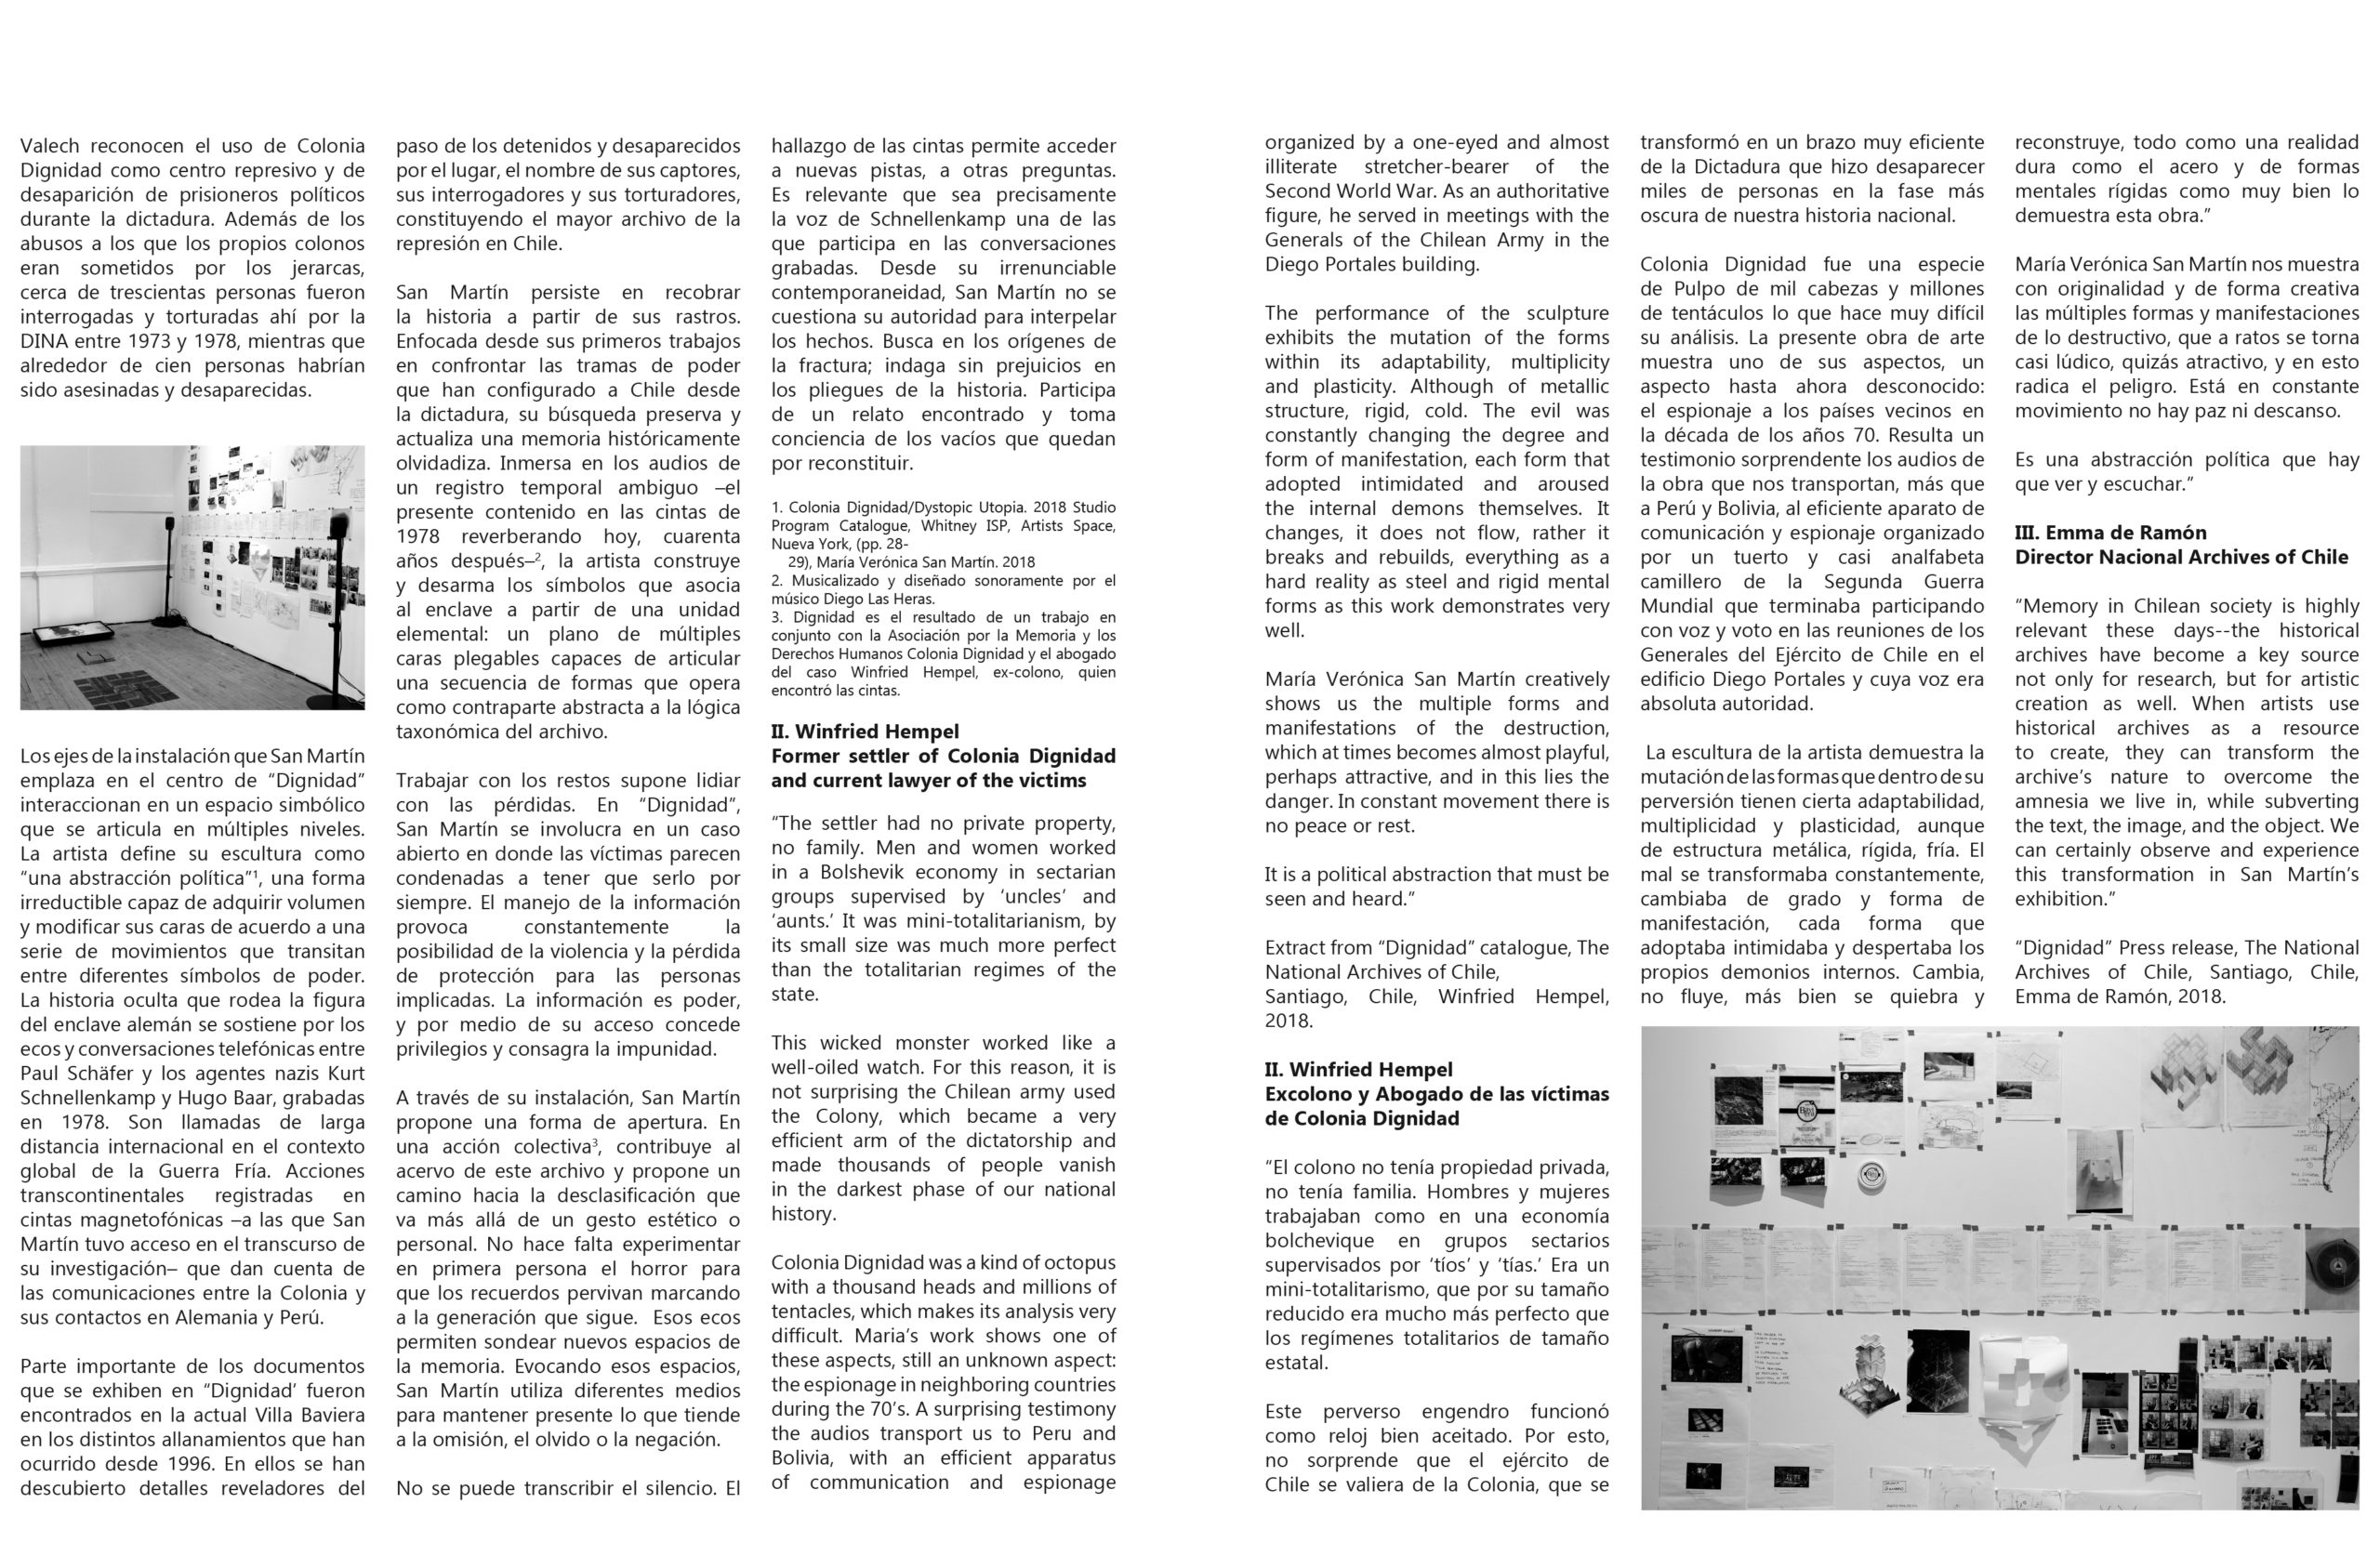 spread with interview with the artist